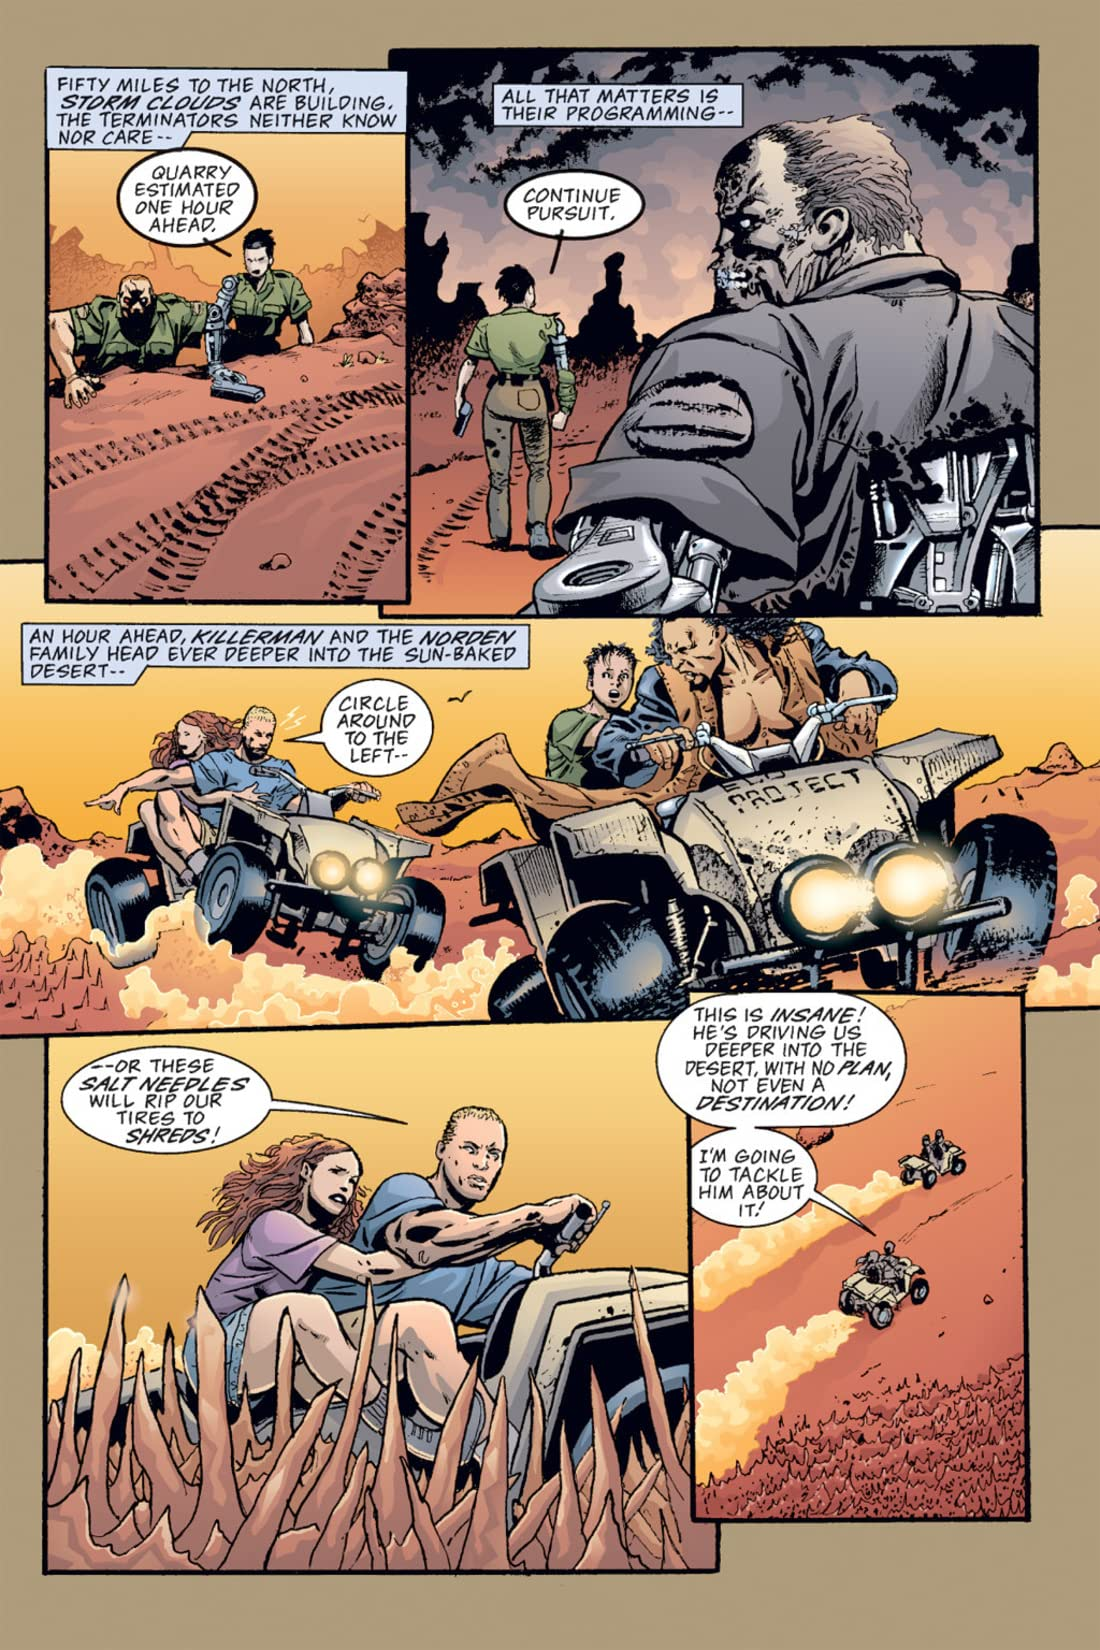 The Terminator: Death Valley #4